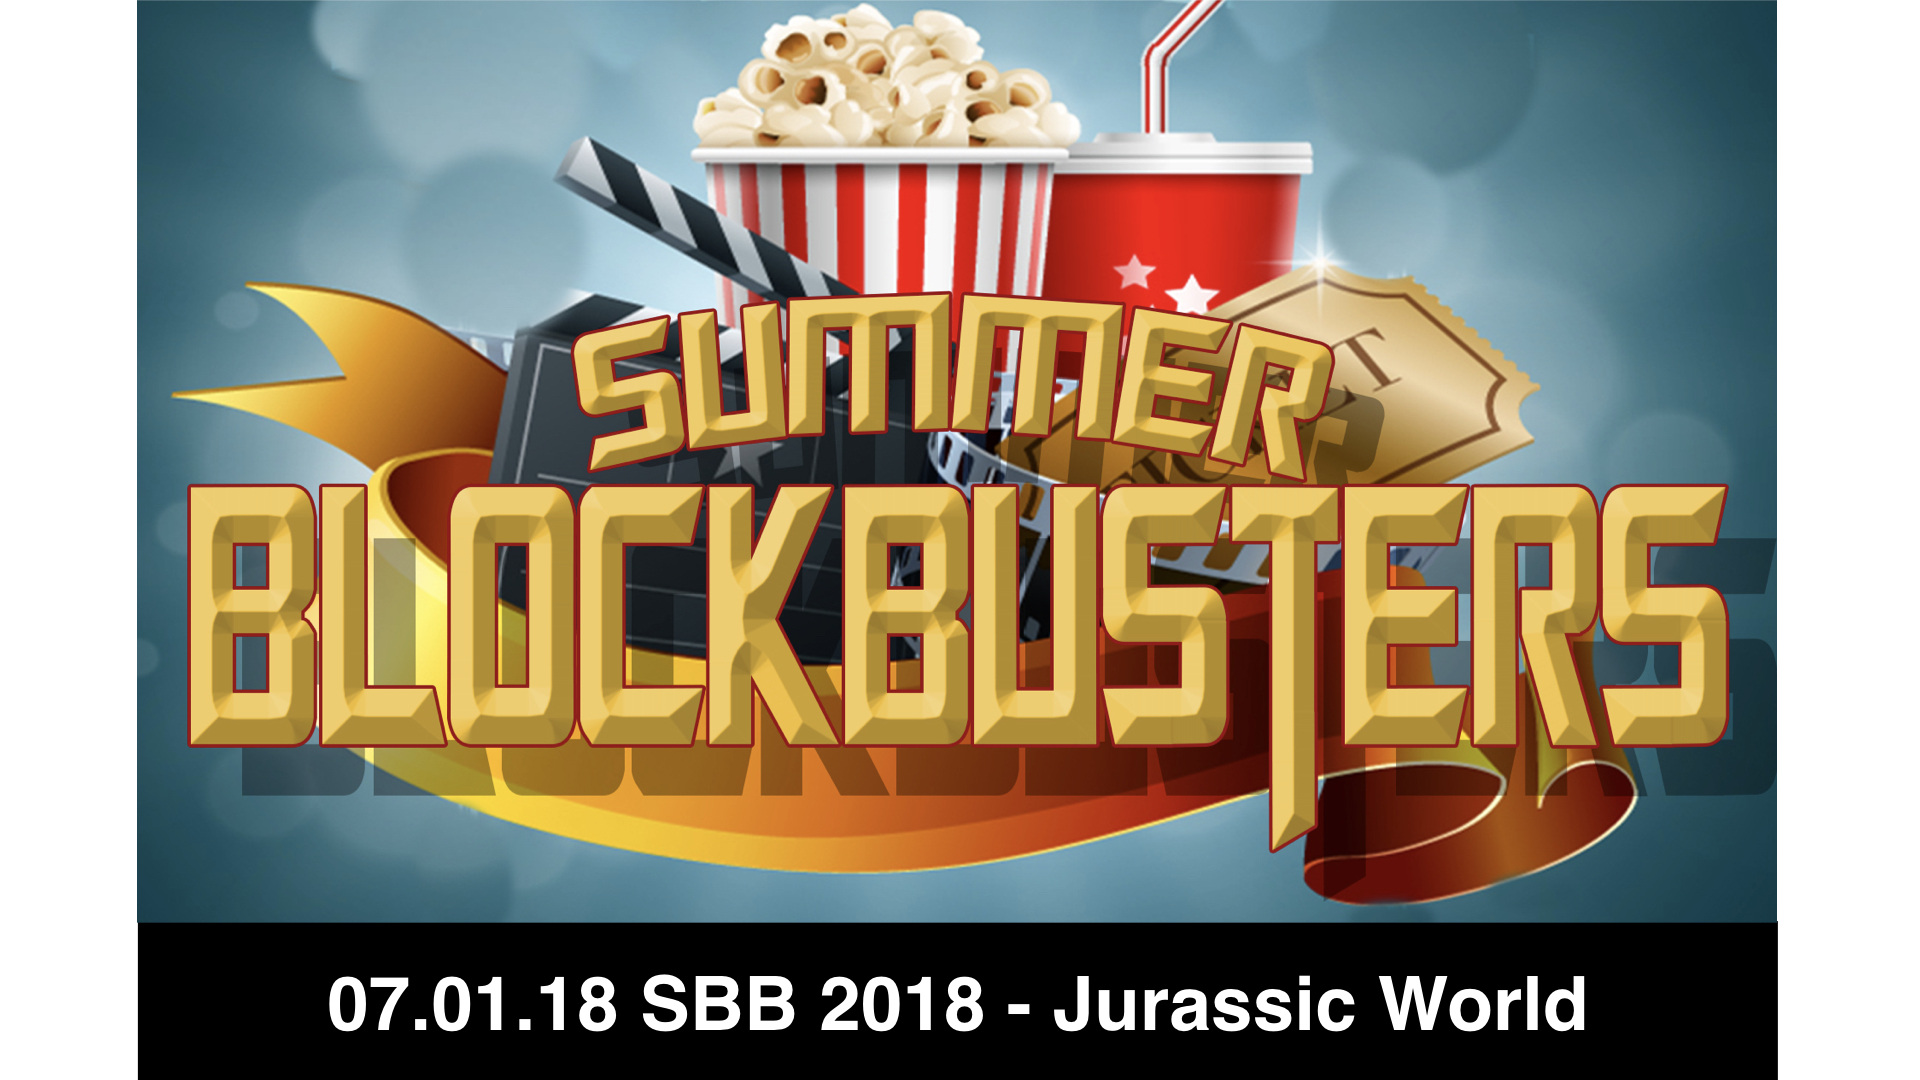 07.01.18 SBB 2018 - Jurassic World